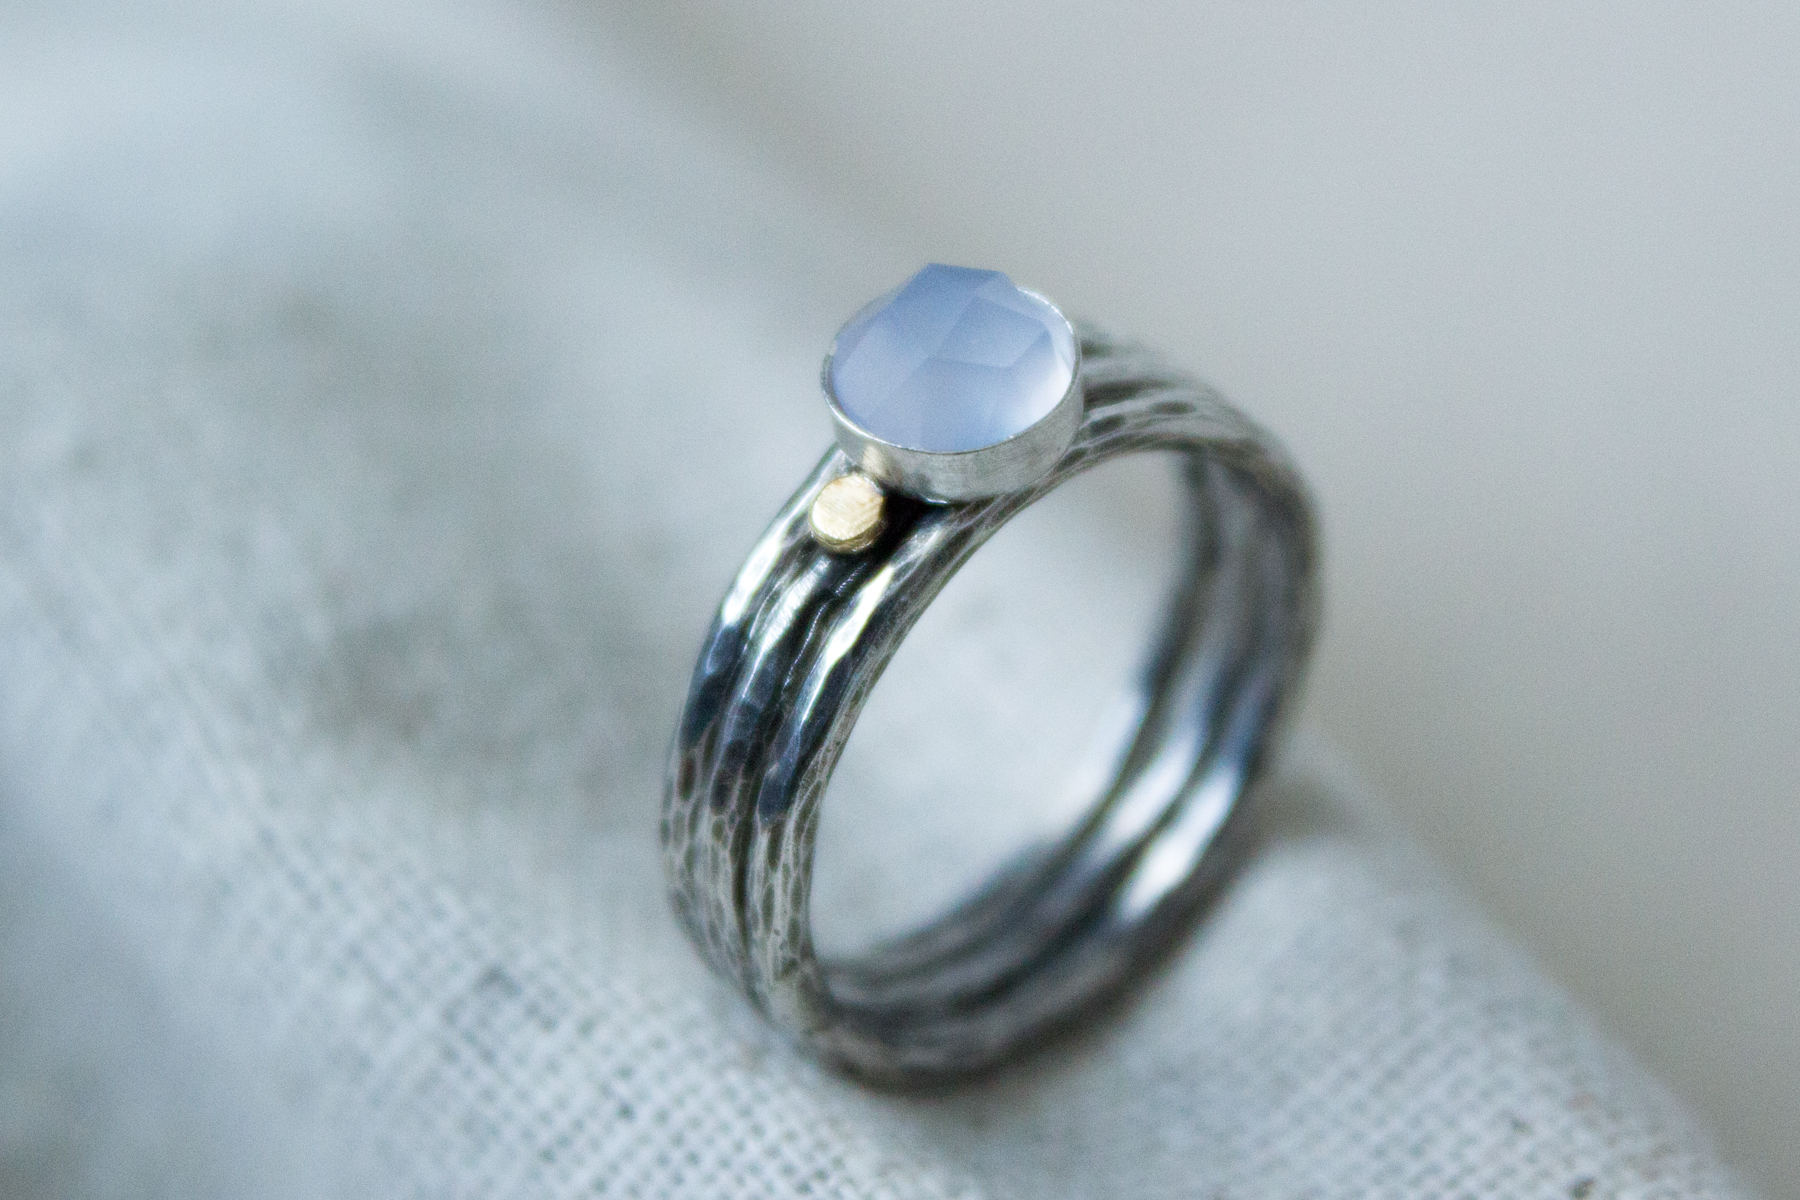 light stone rings blue jewellery liquid intotheblue ring michaeljohn mjj